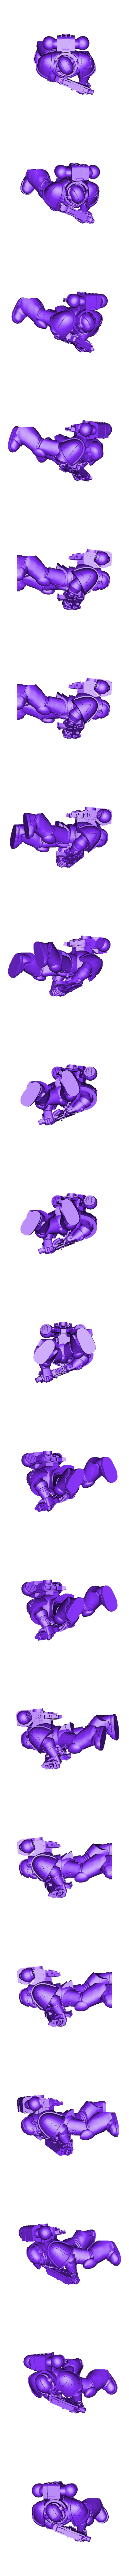 1_Normal_2.stl Download free STL file Angelic Space Soldiers with Heavy Weapons • Template to 3D print, PhysUdo